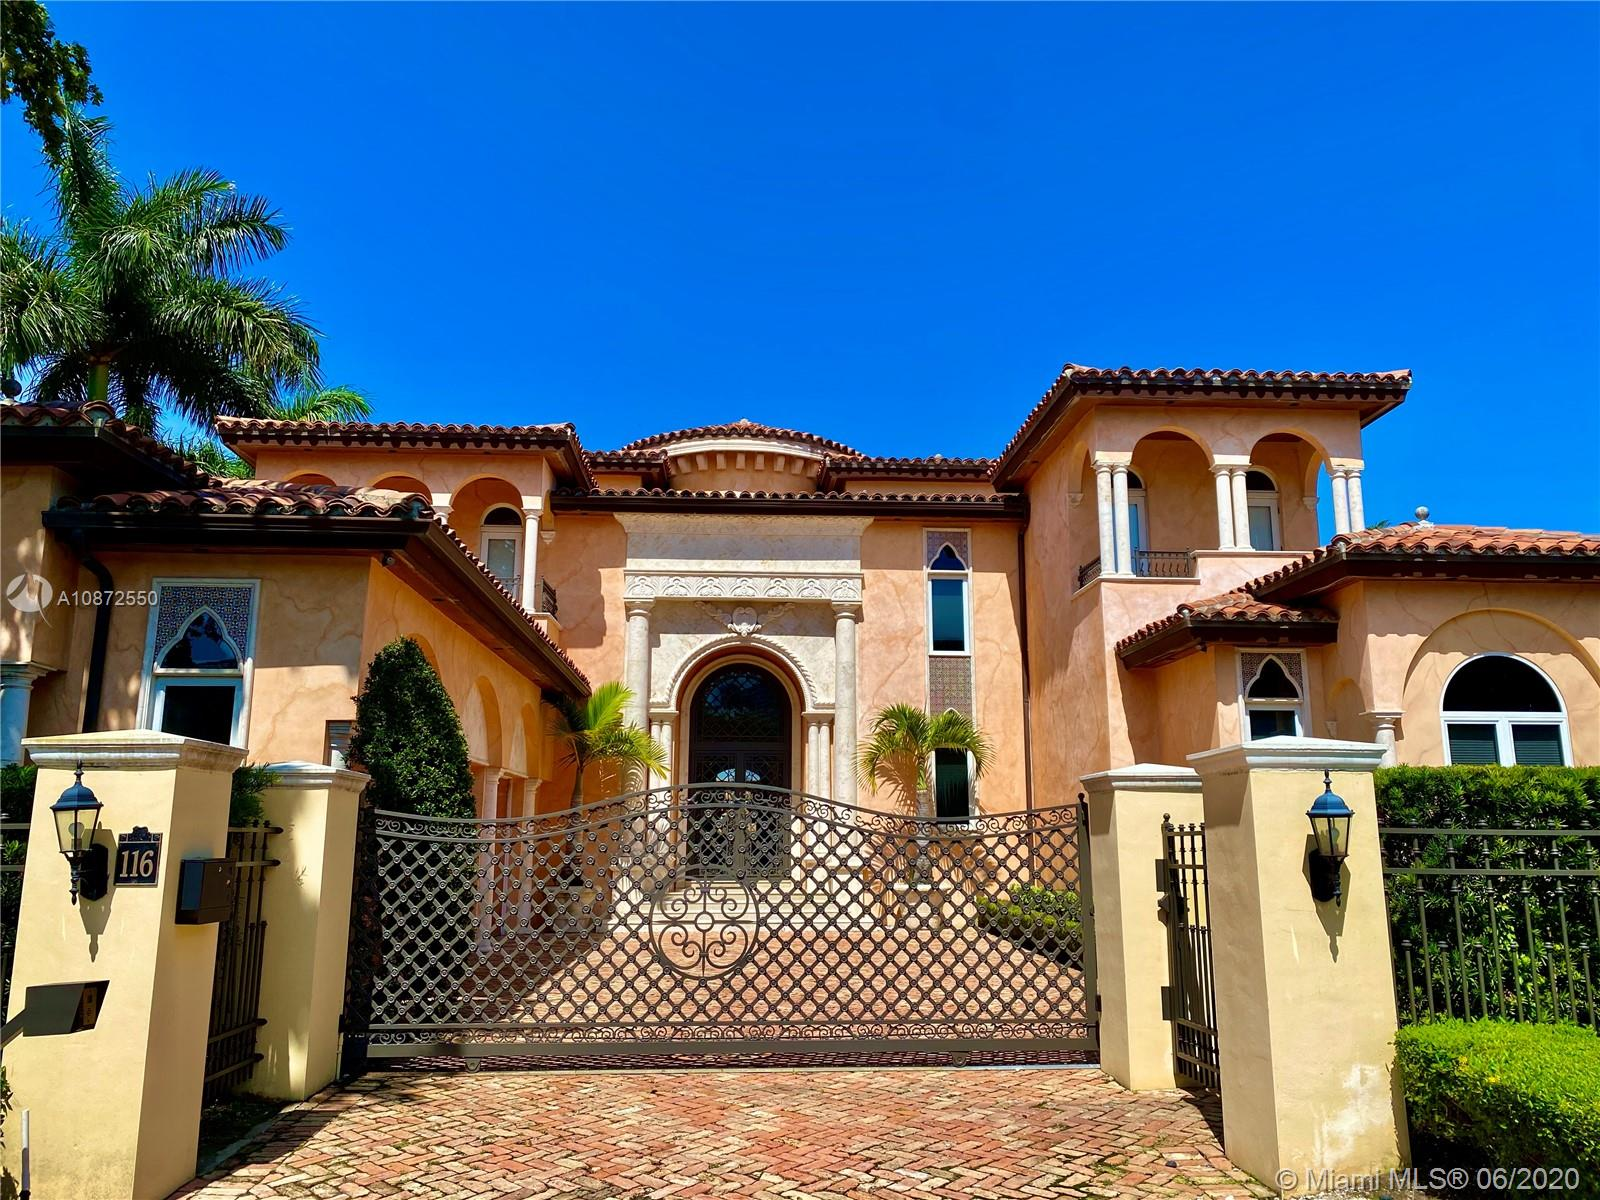 image #1 of property, Bal Harbour Residential S